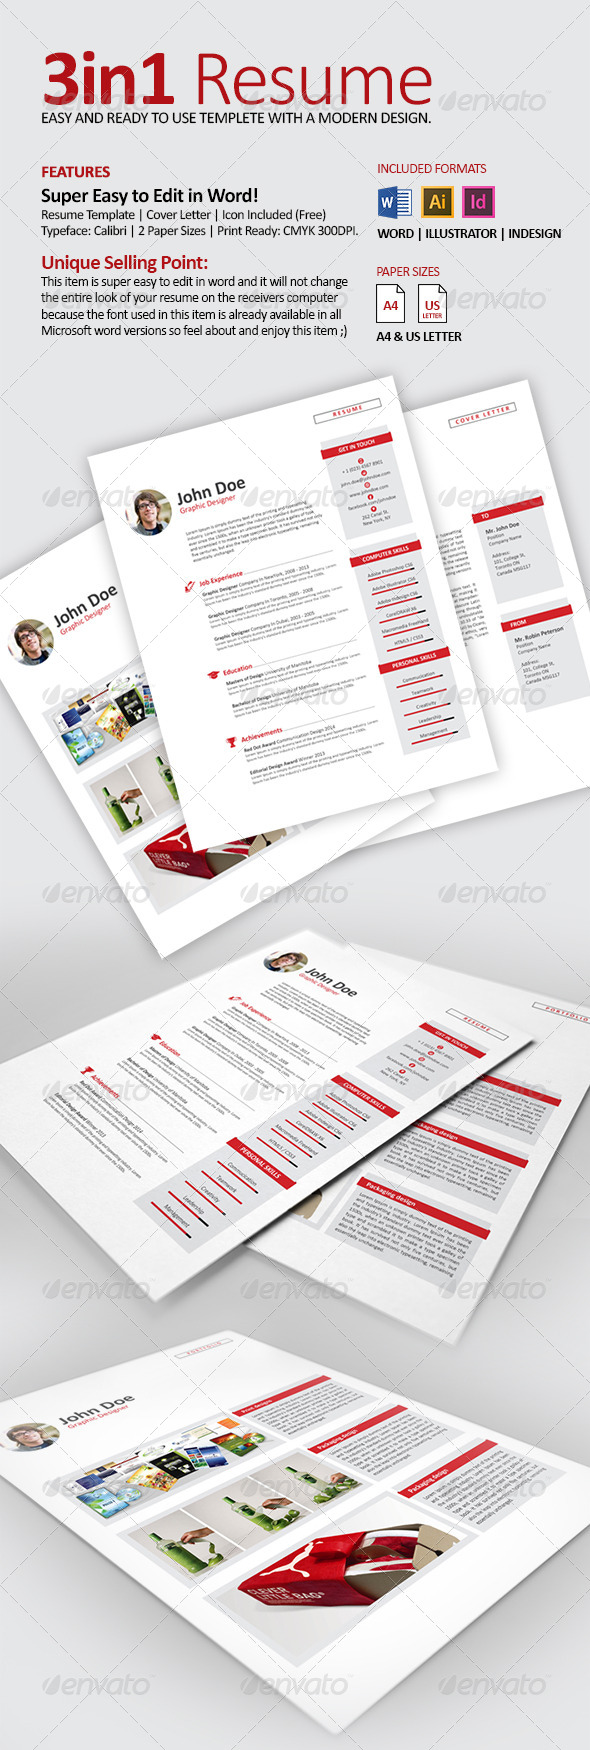 Resume CV with Word Files